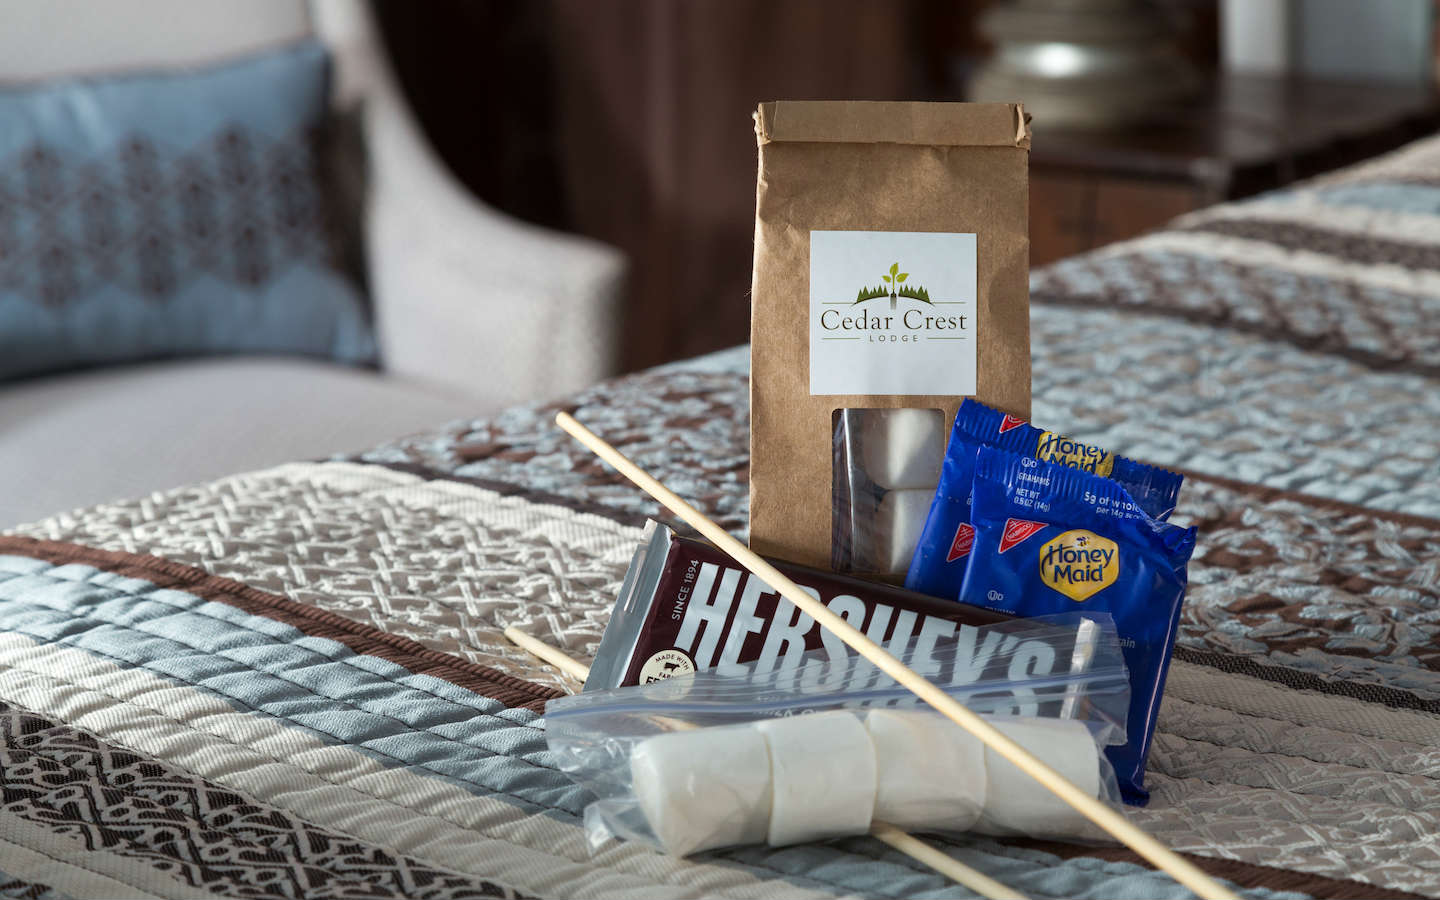 S'mores Kits included for all Guests